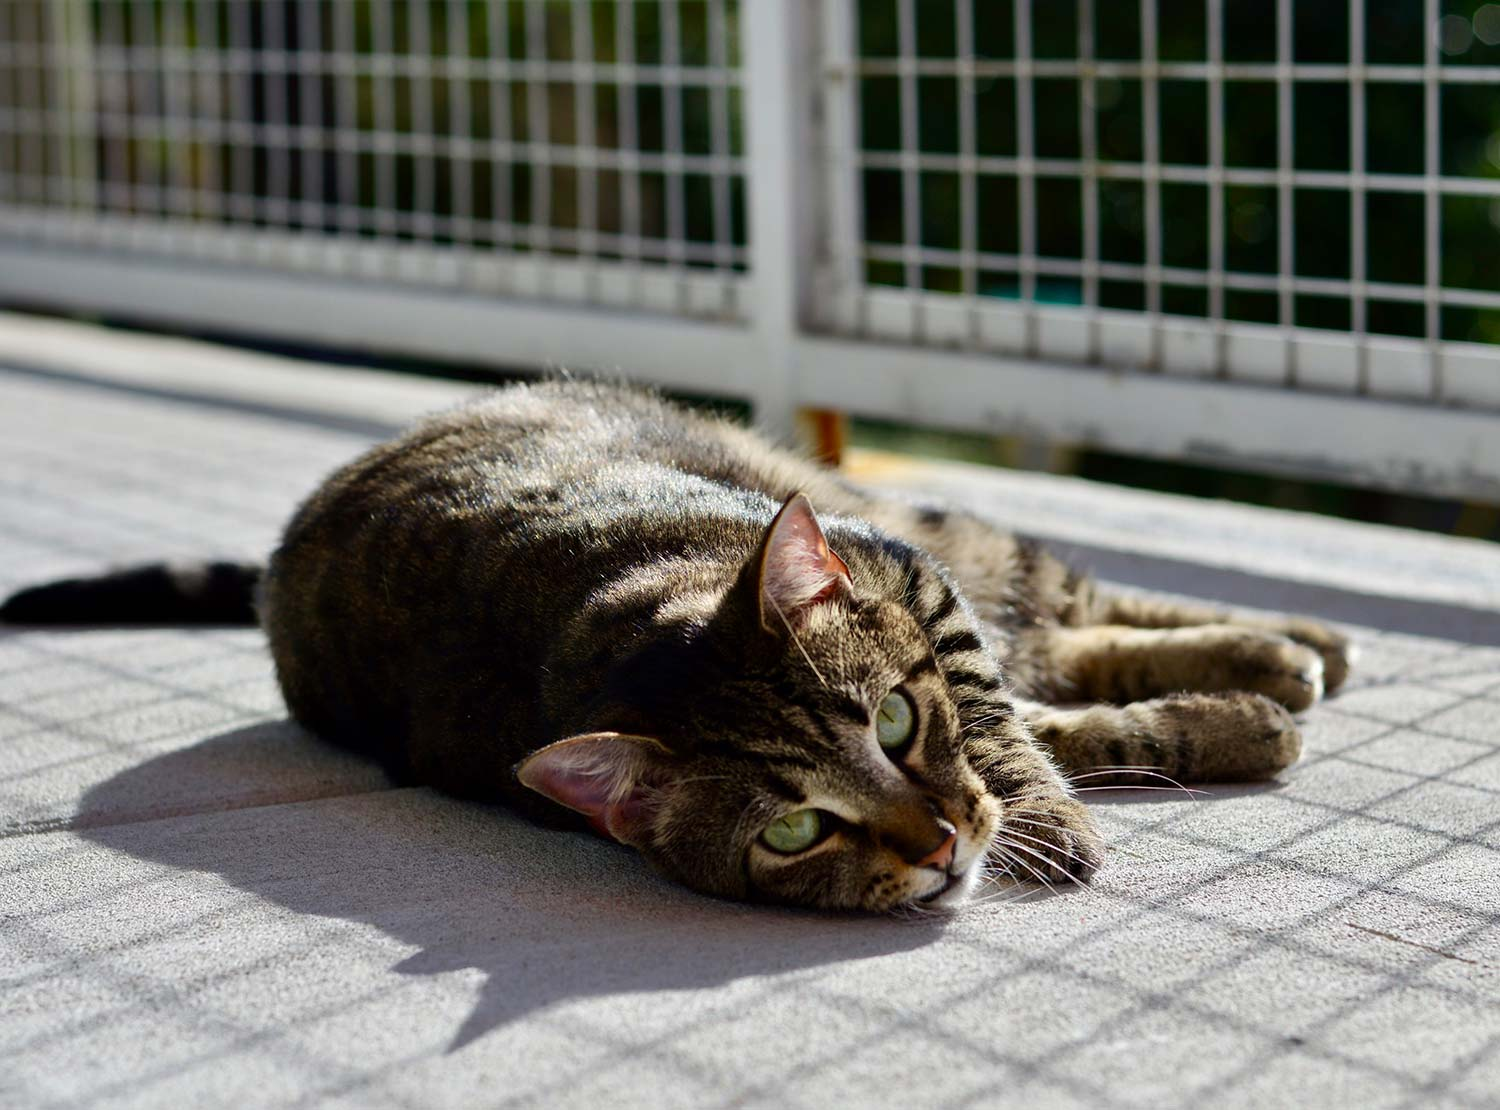 Photo of a cute cat on a balcony in the sun